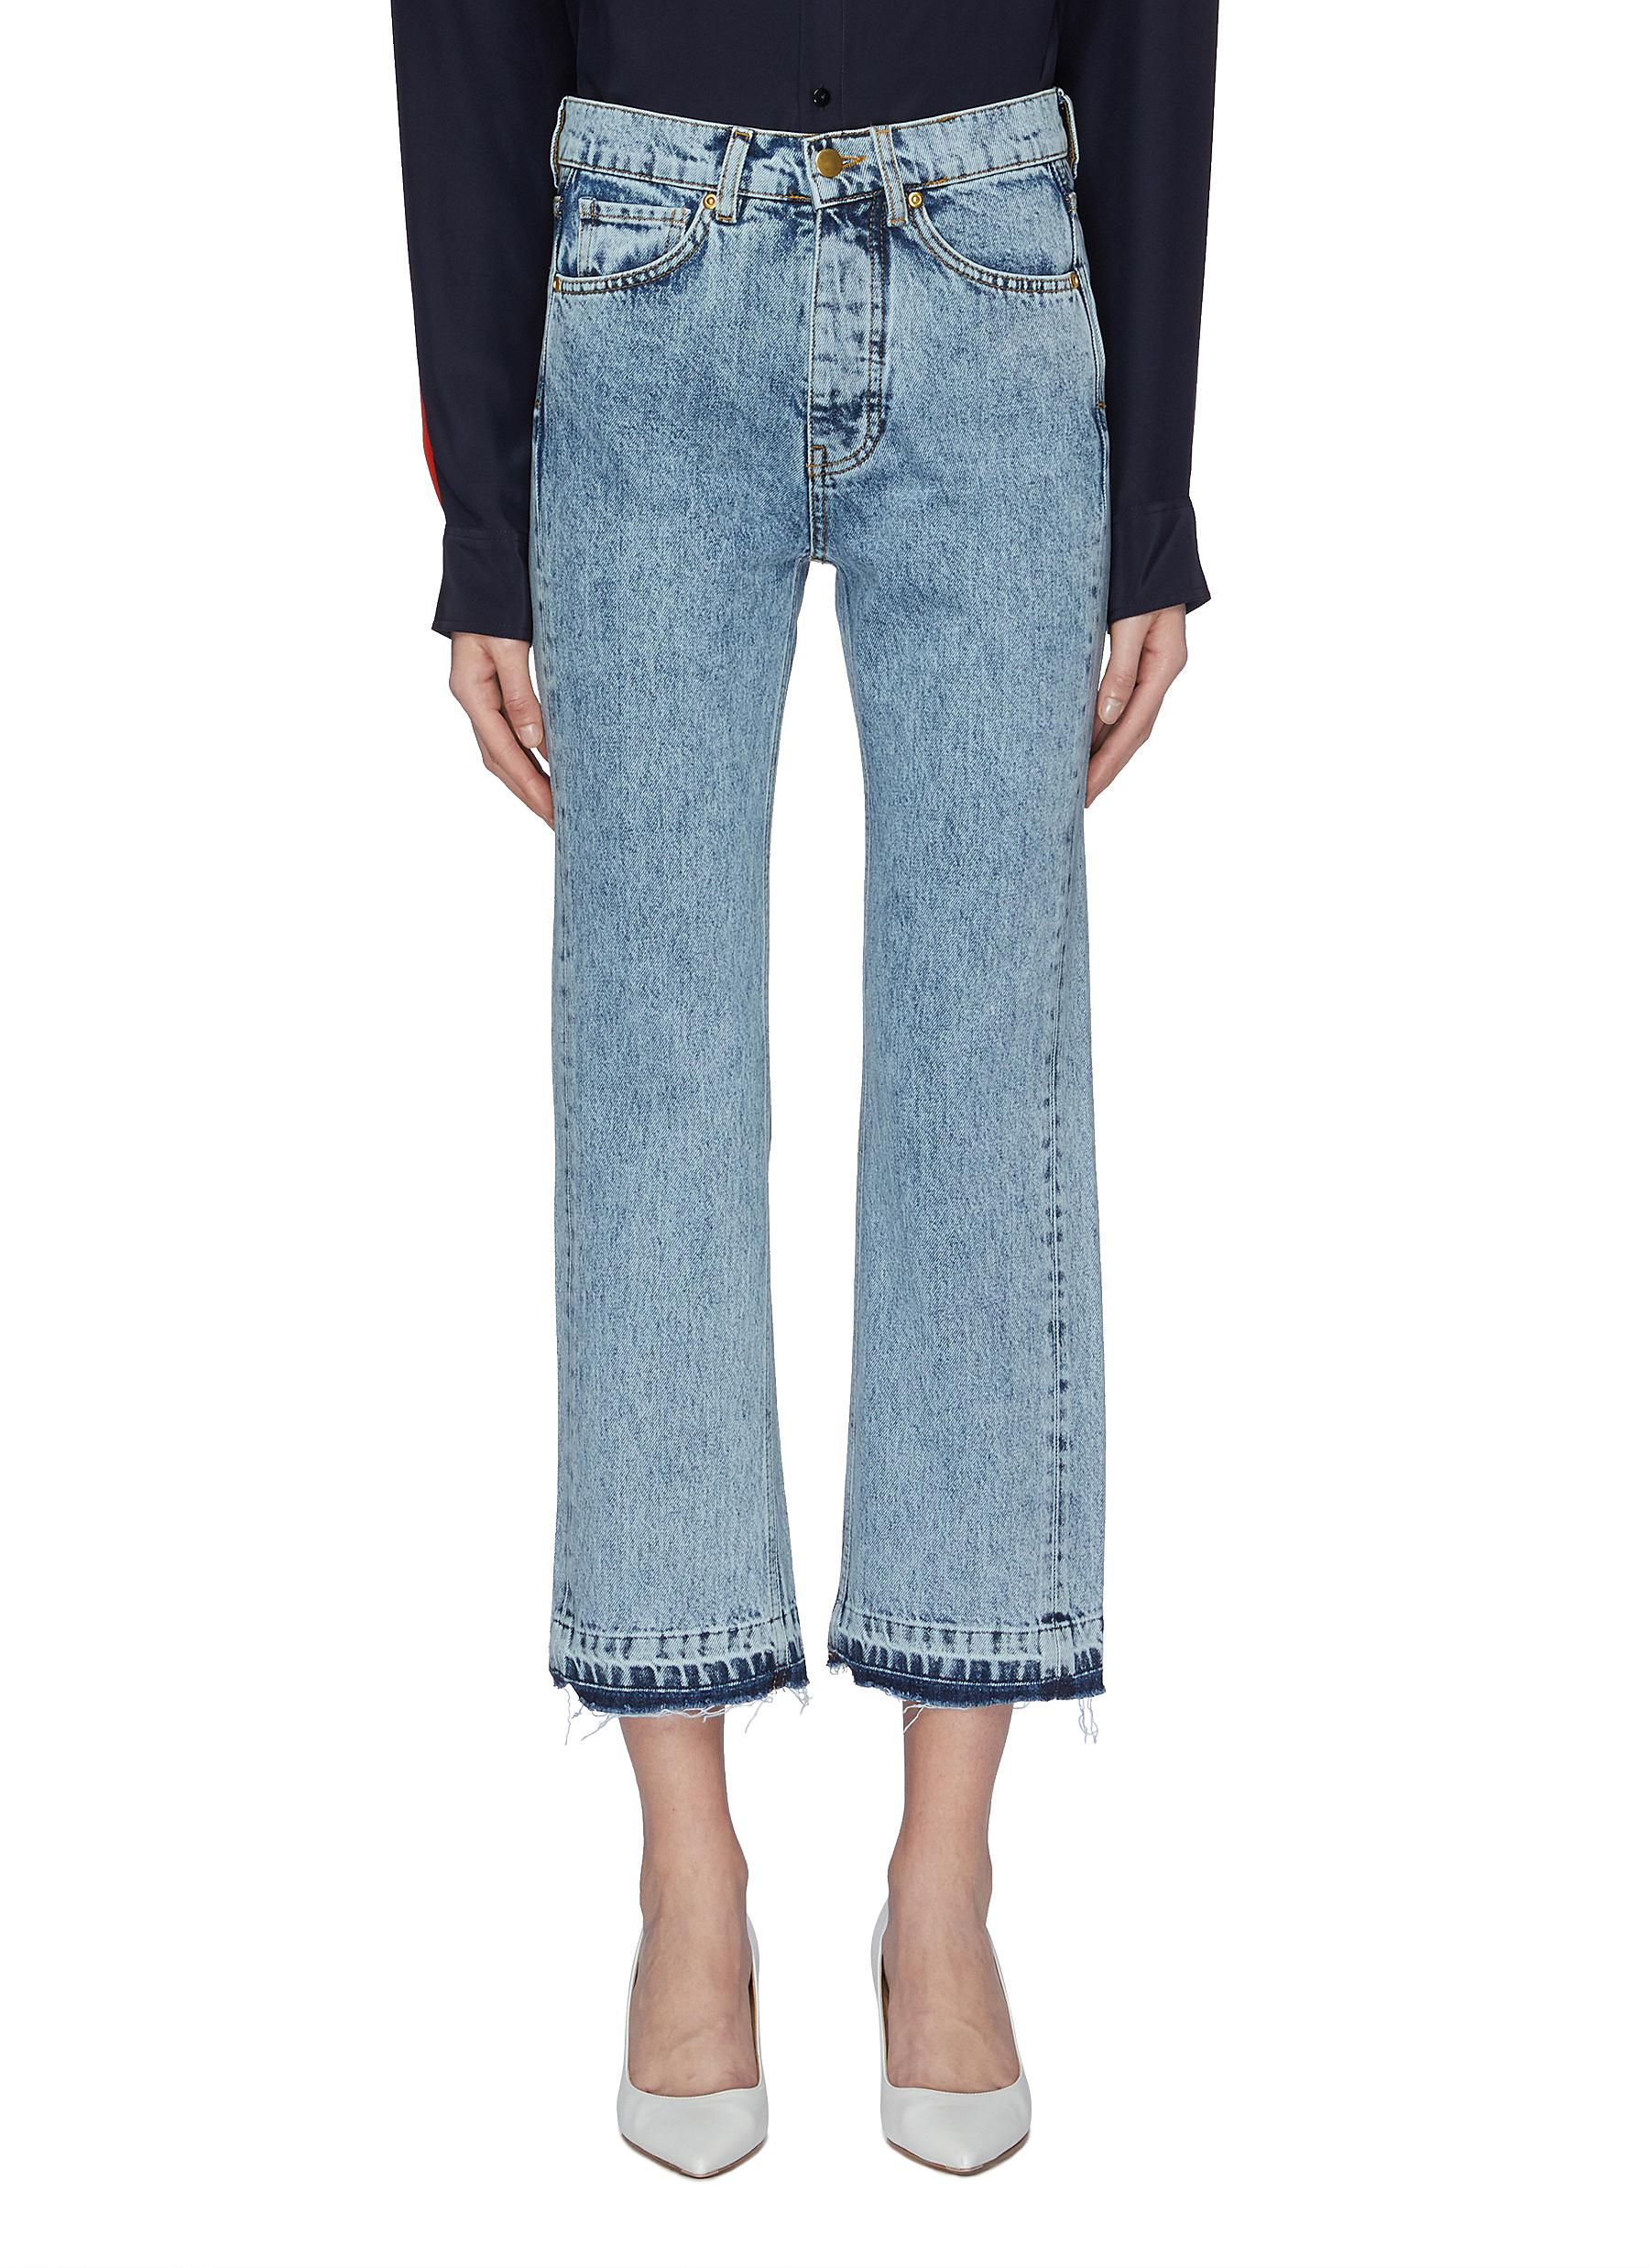 Super High Cali let-out cuff bleached jeans by Victoria, Victoria Beckham